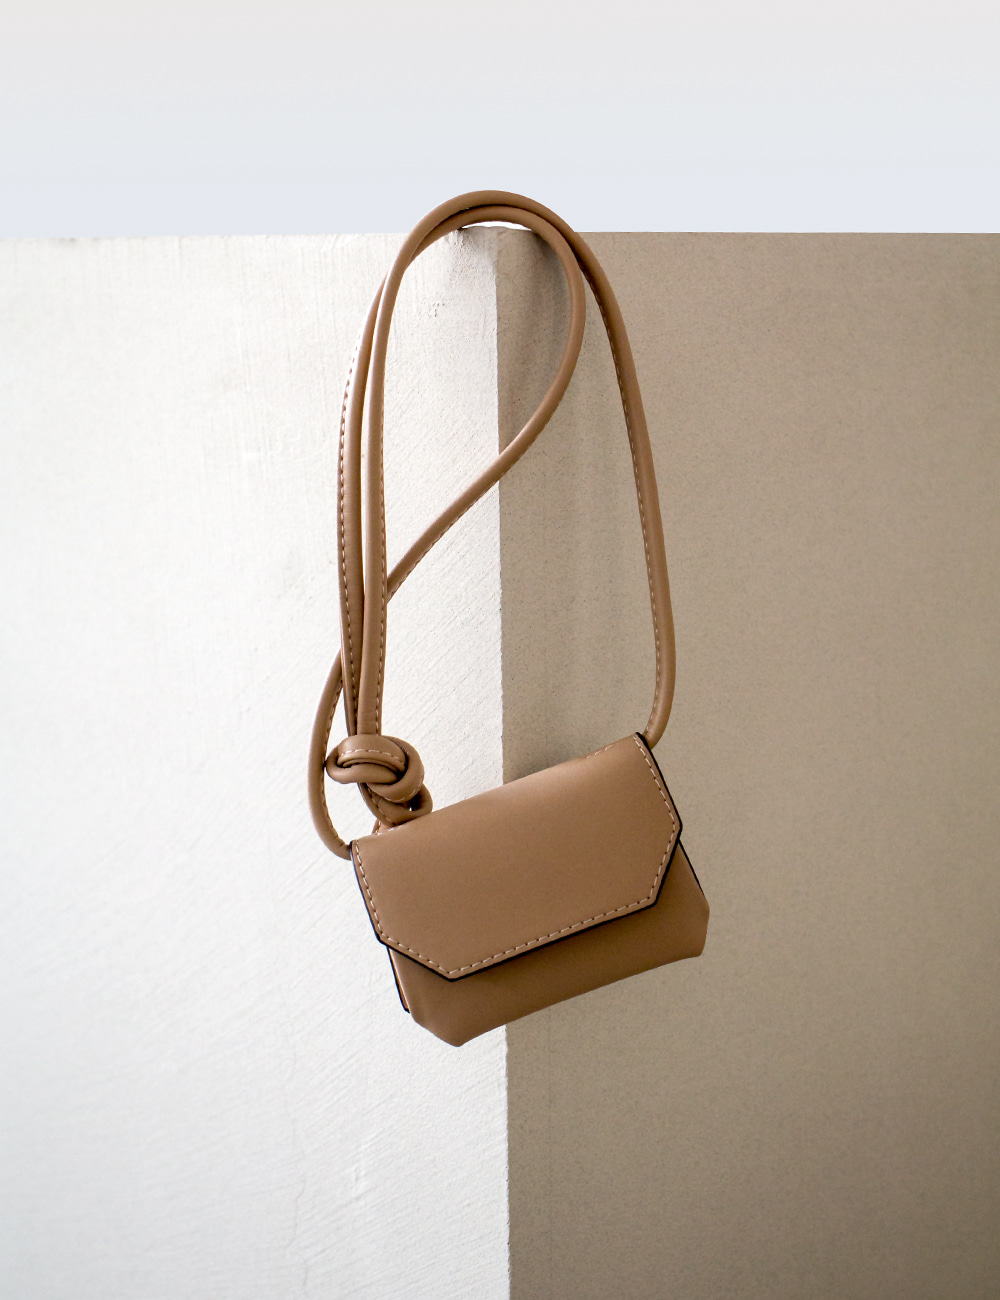 MAISON246,246 KOE WALLET BAG - BEIGE,No.246